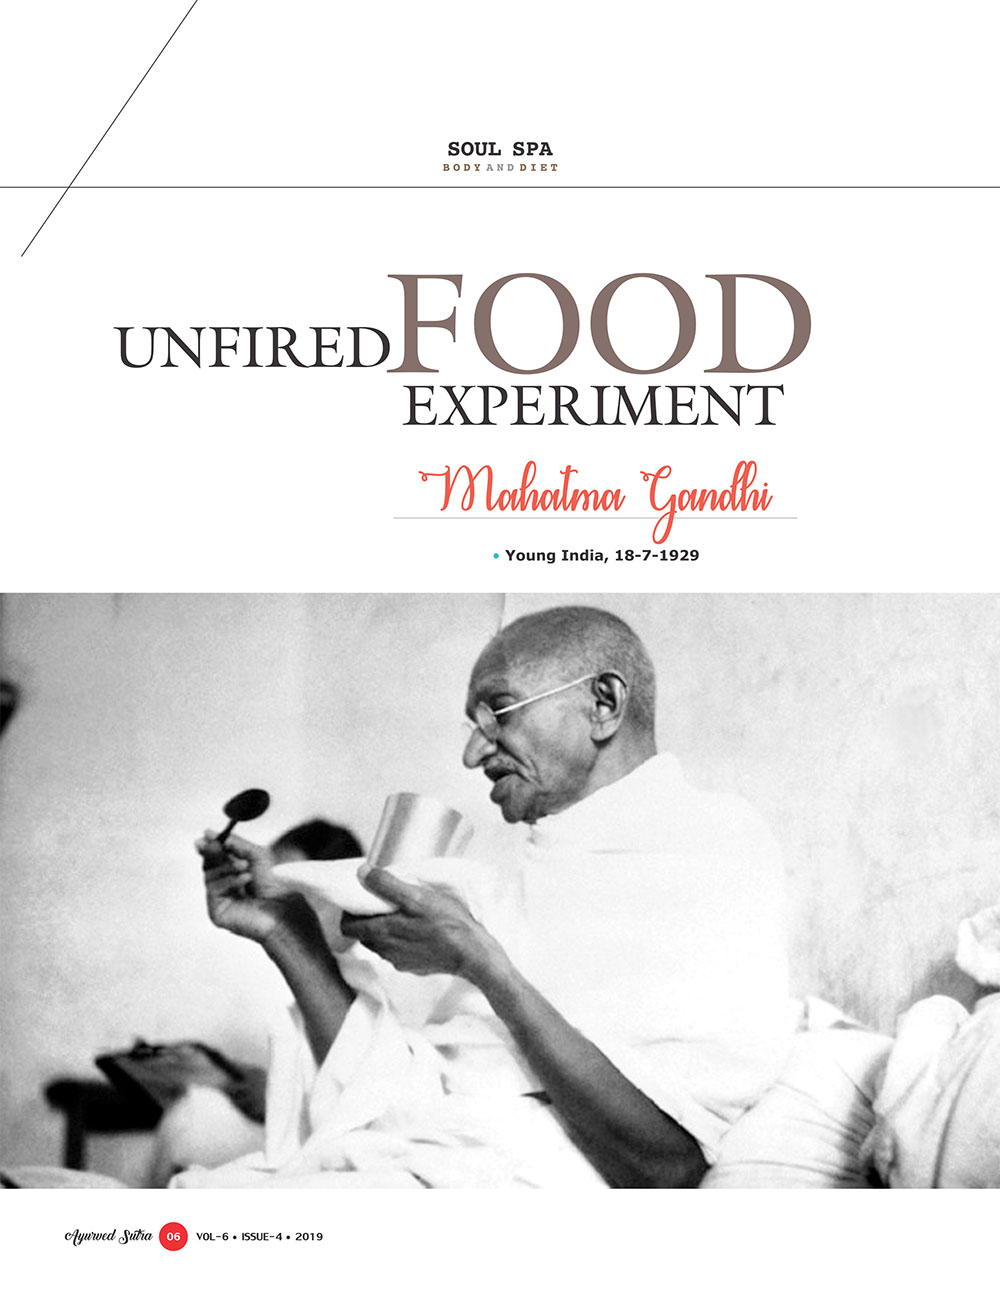 Ayurvedsutra Vol 06 issue 04 8 - How Mahatma Gandhi experimented with Unfired Food